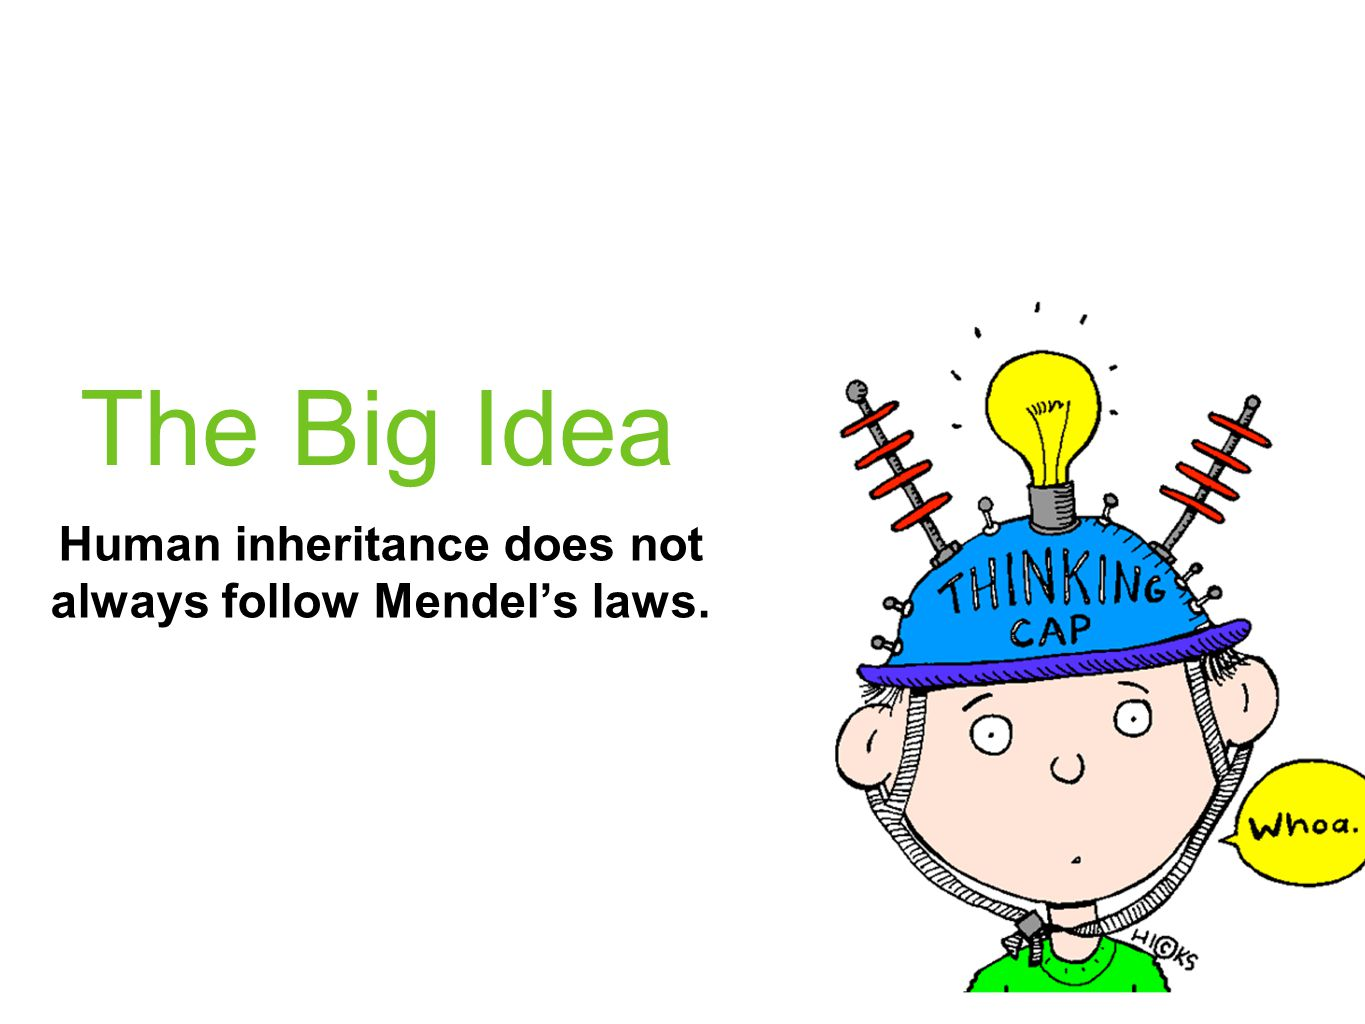 The Big Idea Human inheritance does not always follow Mendels laws.